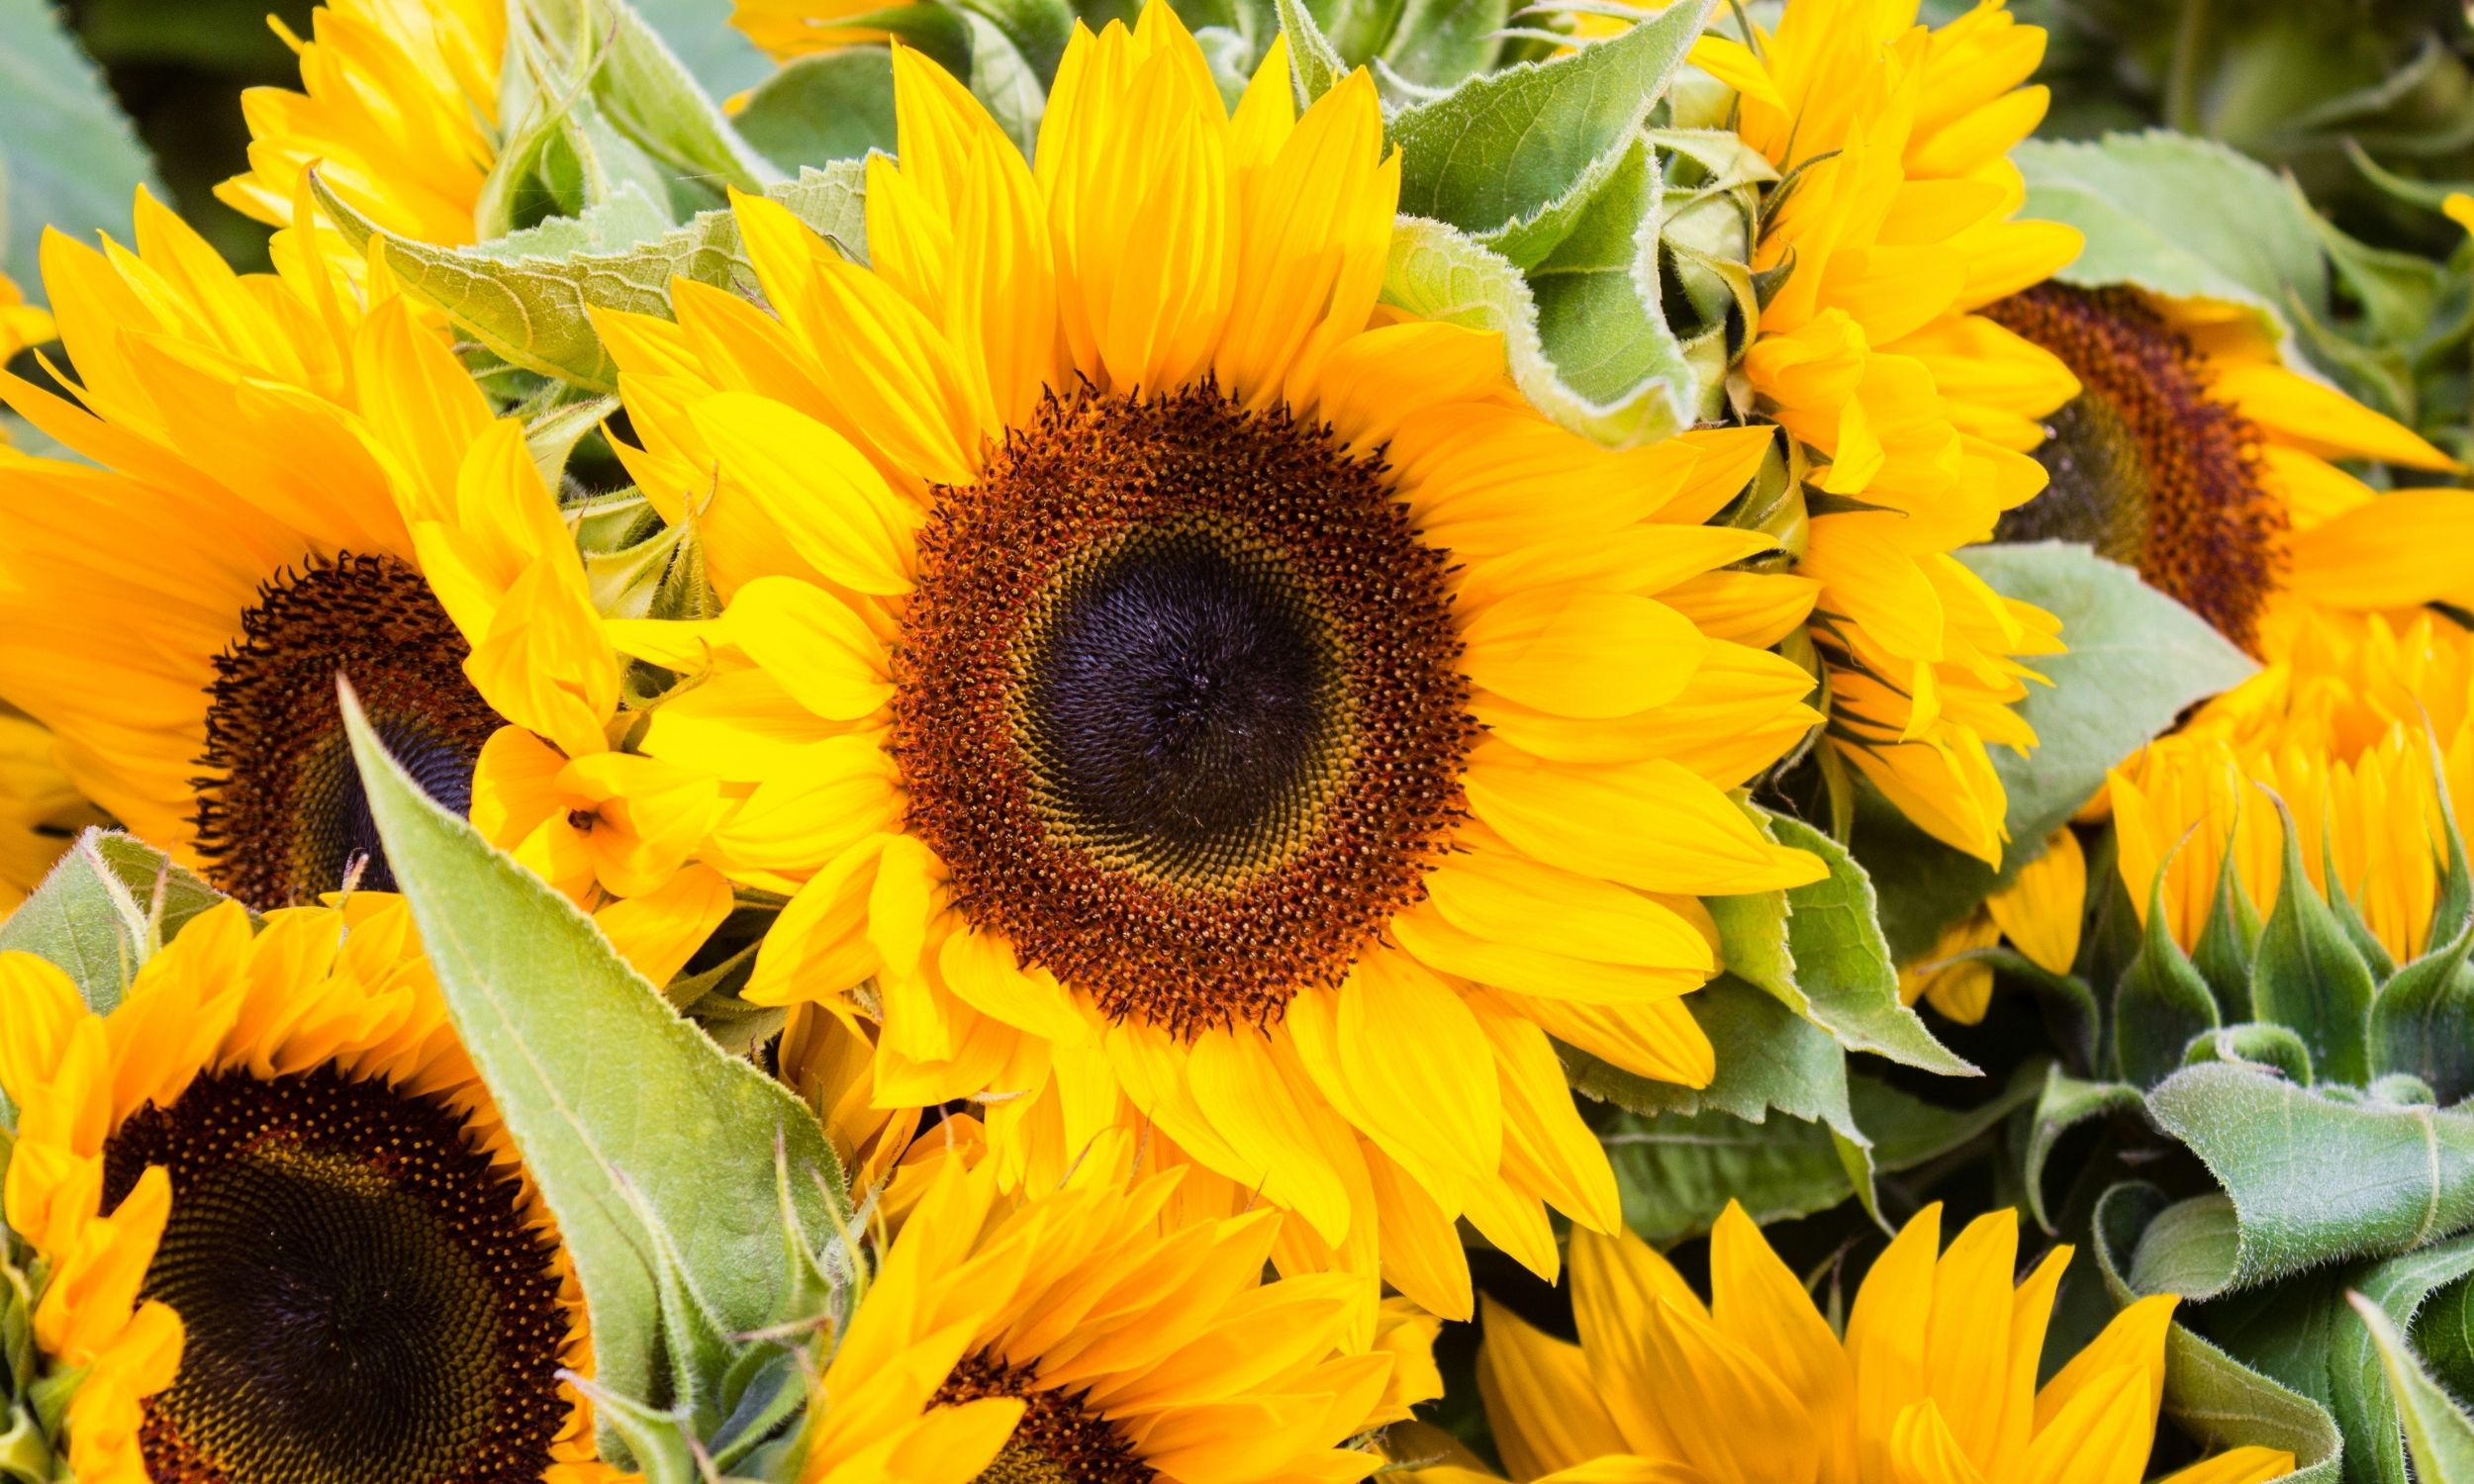 tips for growing sunflowers as cut flowers